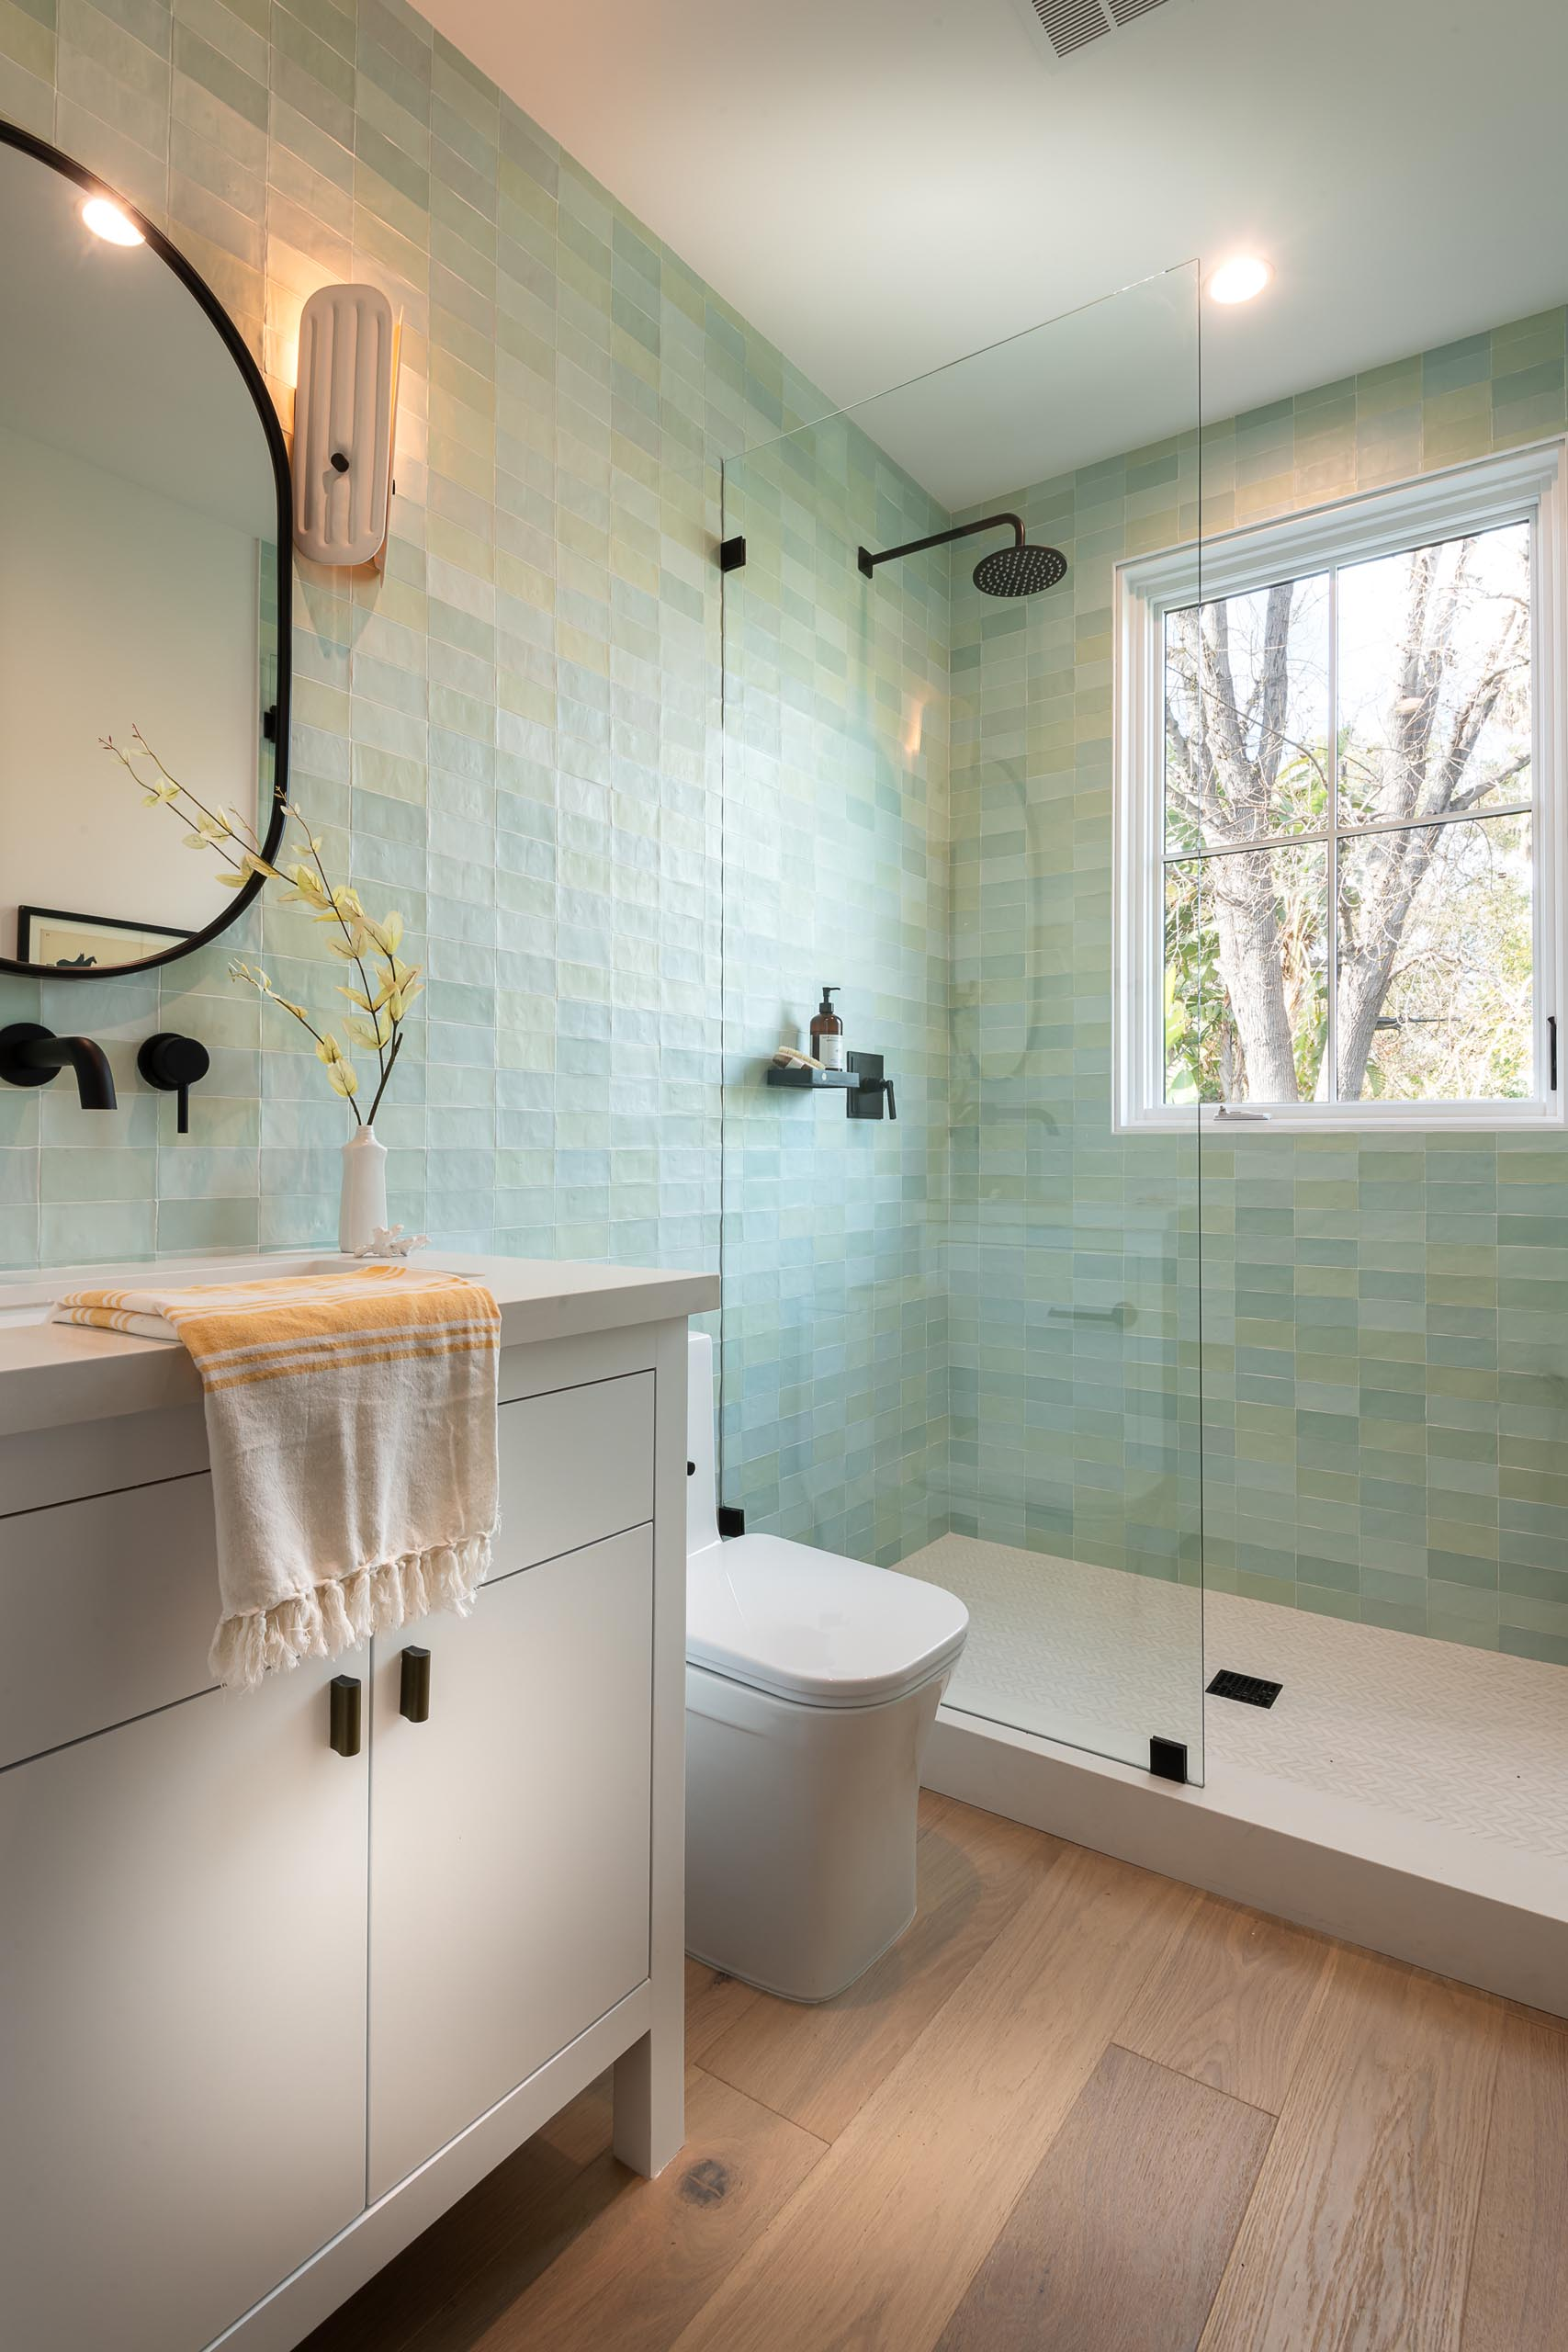 In this bathroom, there's small rectangular tiles in light green and blue tones that cover the walls.